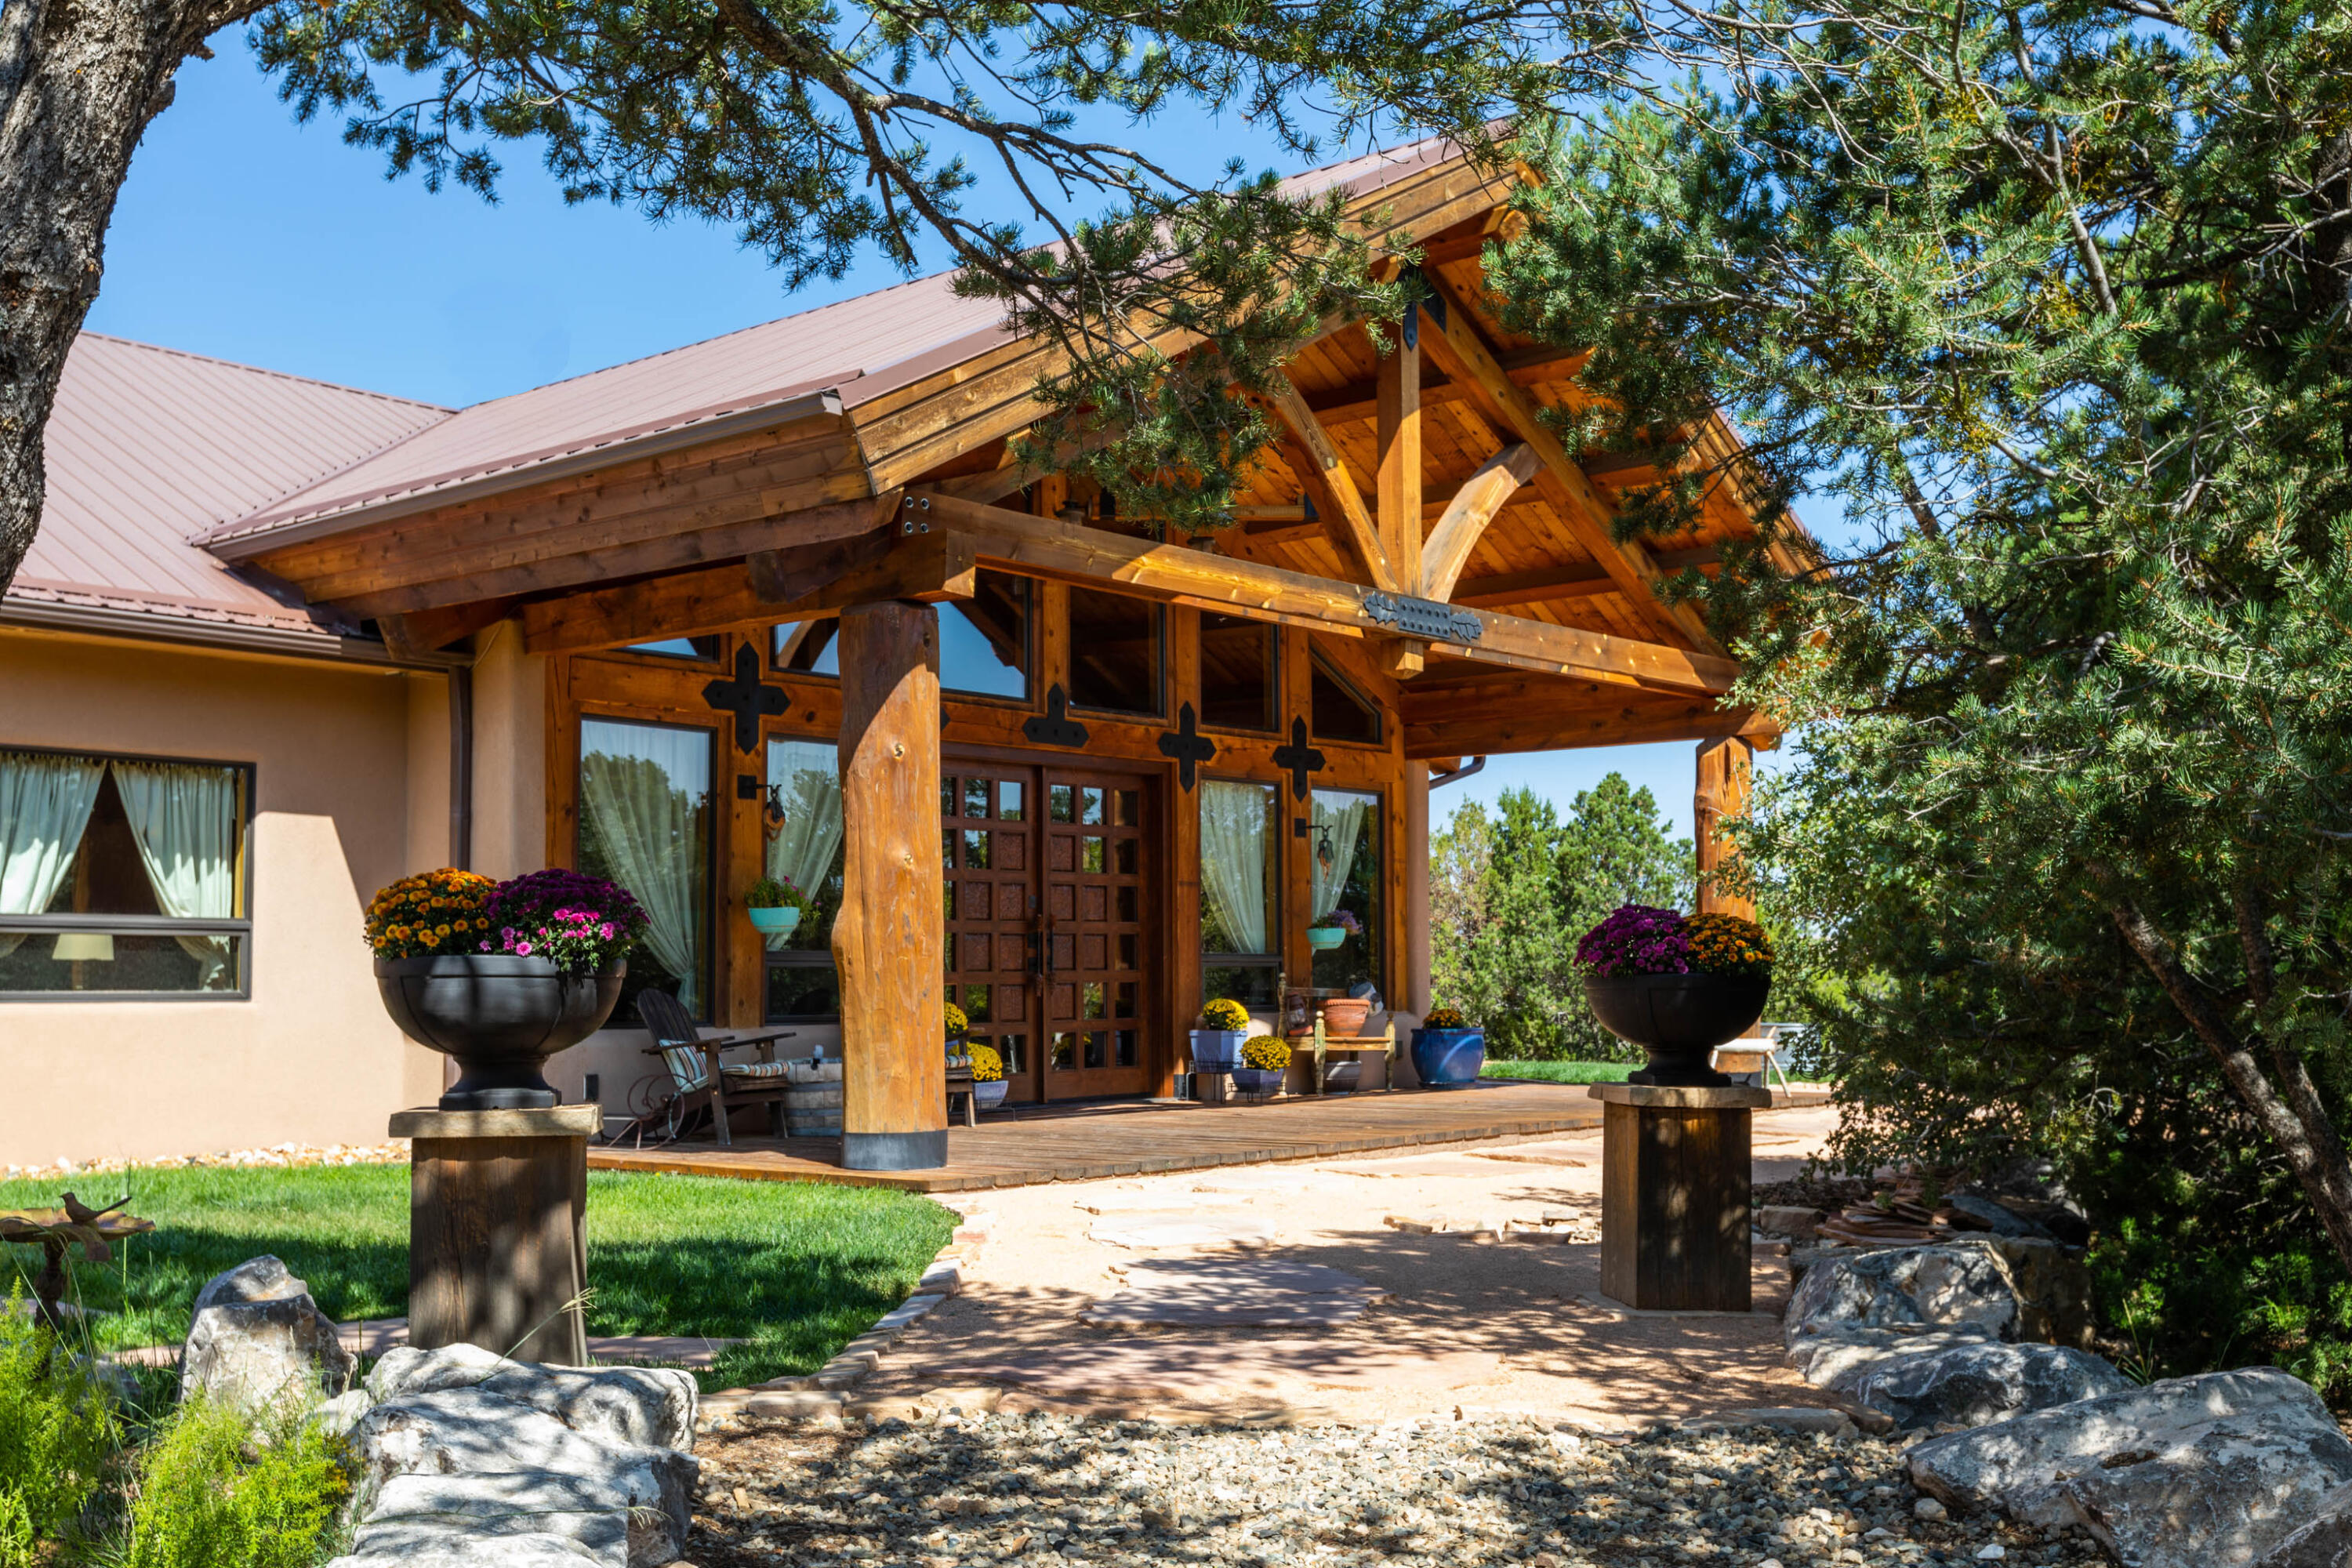 NM meets Vail, Co in this casually elegant contemporary rustic lodge. Enjoy all 4 seasons from walls of windows. 20 ft wood ceilings & massive trusses in the great rm w/2 living areas divided by a 2 way stacked stone fireplace & beautiful water feature entry. Concrete radiant heated floors & wood ceilings thruout. Kitchen has 2 ranges, 2 dishwashers, built in fridge, rainforest marble island, copper hood/backsplash & lg. pantry. Custom 12 ft+ dining table stays w/ built in china hutch. Main suite w/Jacuzzi tub, bed & breakfast fireplace & boutique closet. 1369 sq. ft. 3+ gar/workshop w/shelves. Roomy fr/bk porches, Gated/paved clubhouse community offers walking trails, indoor pool, gym, tennis, etc. The Lodge at Nature Pointe offers a remarkable lifestyle. Minutes from ABQ/Yet a world away